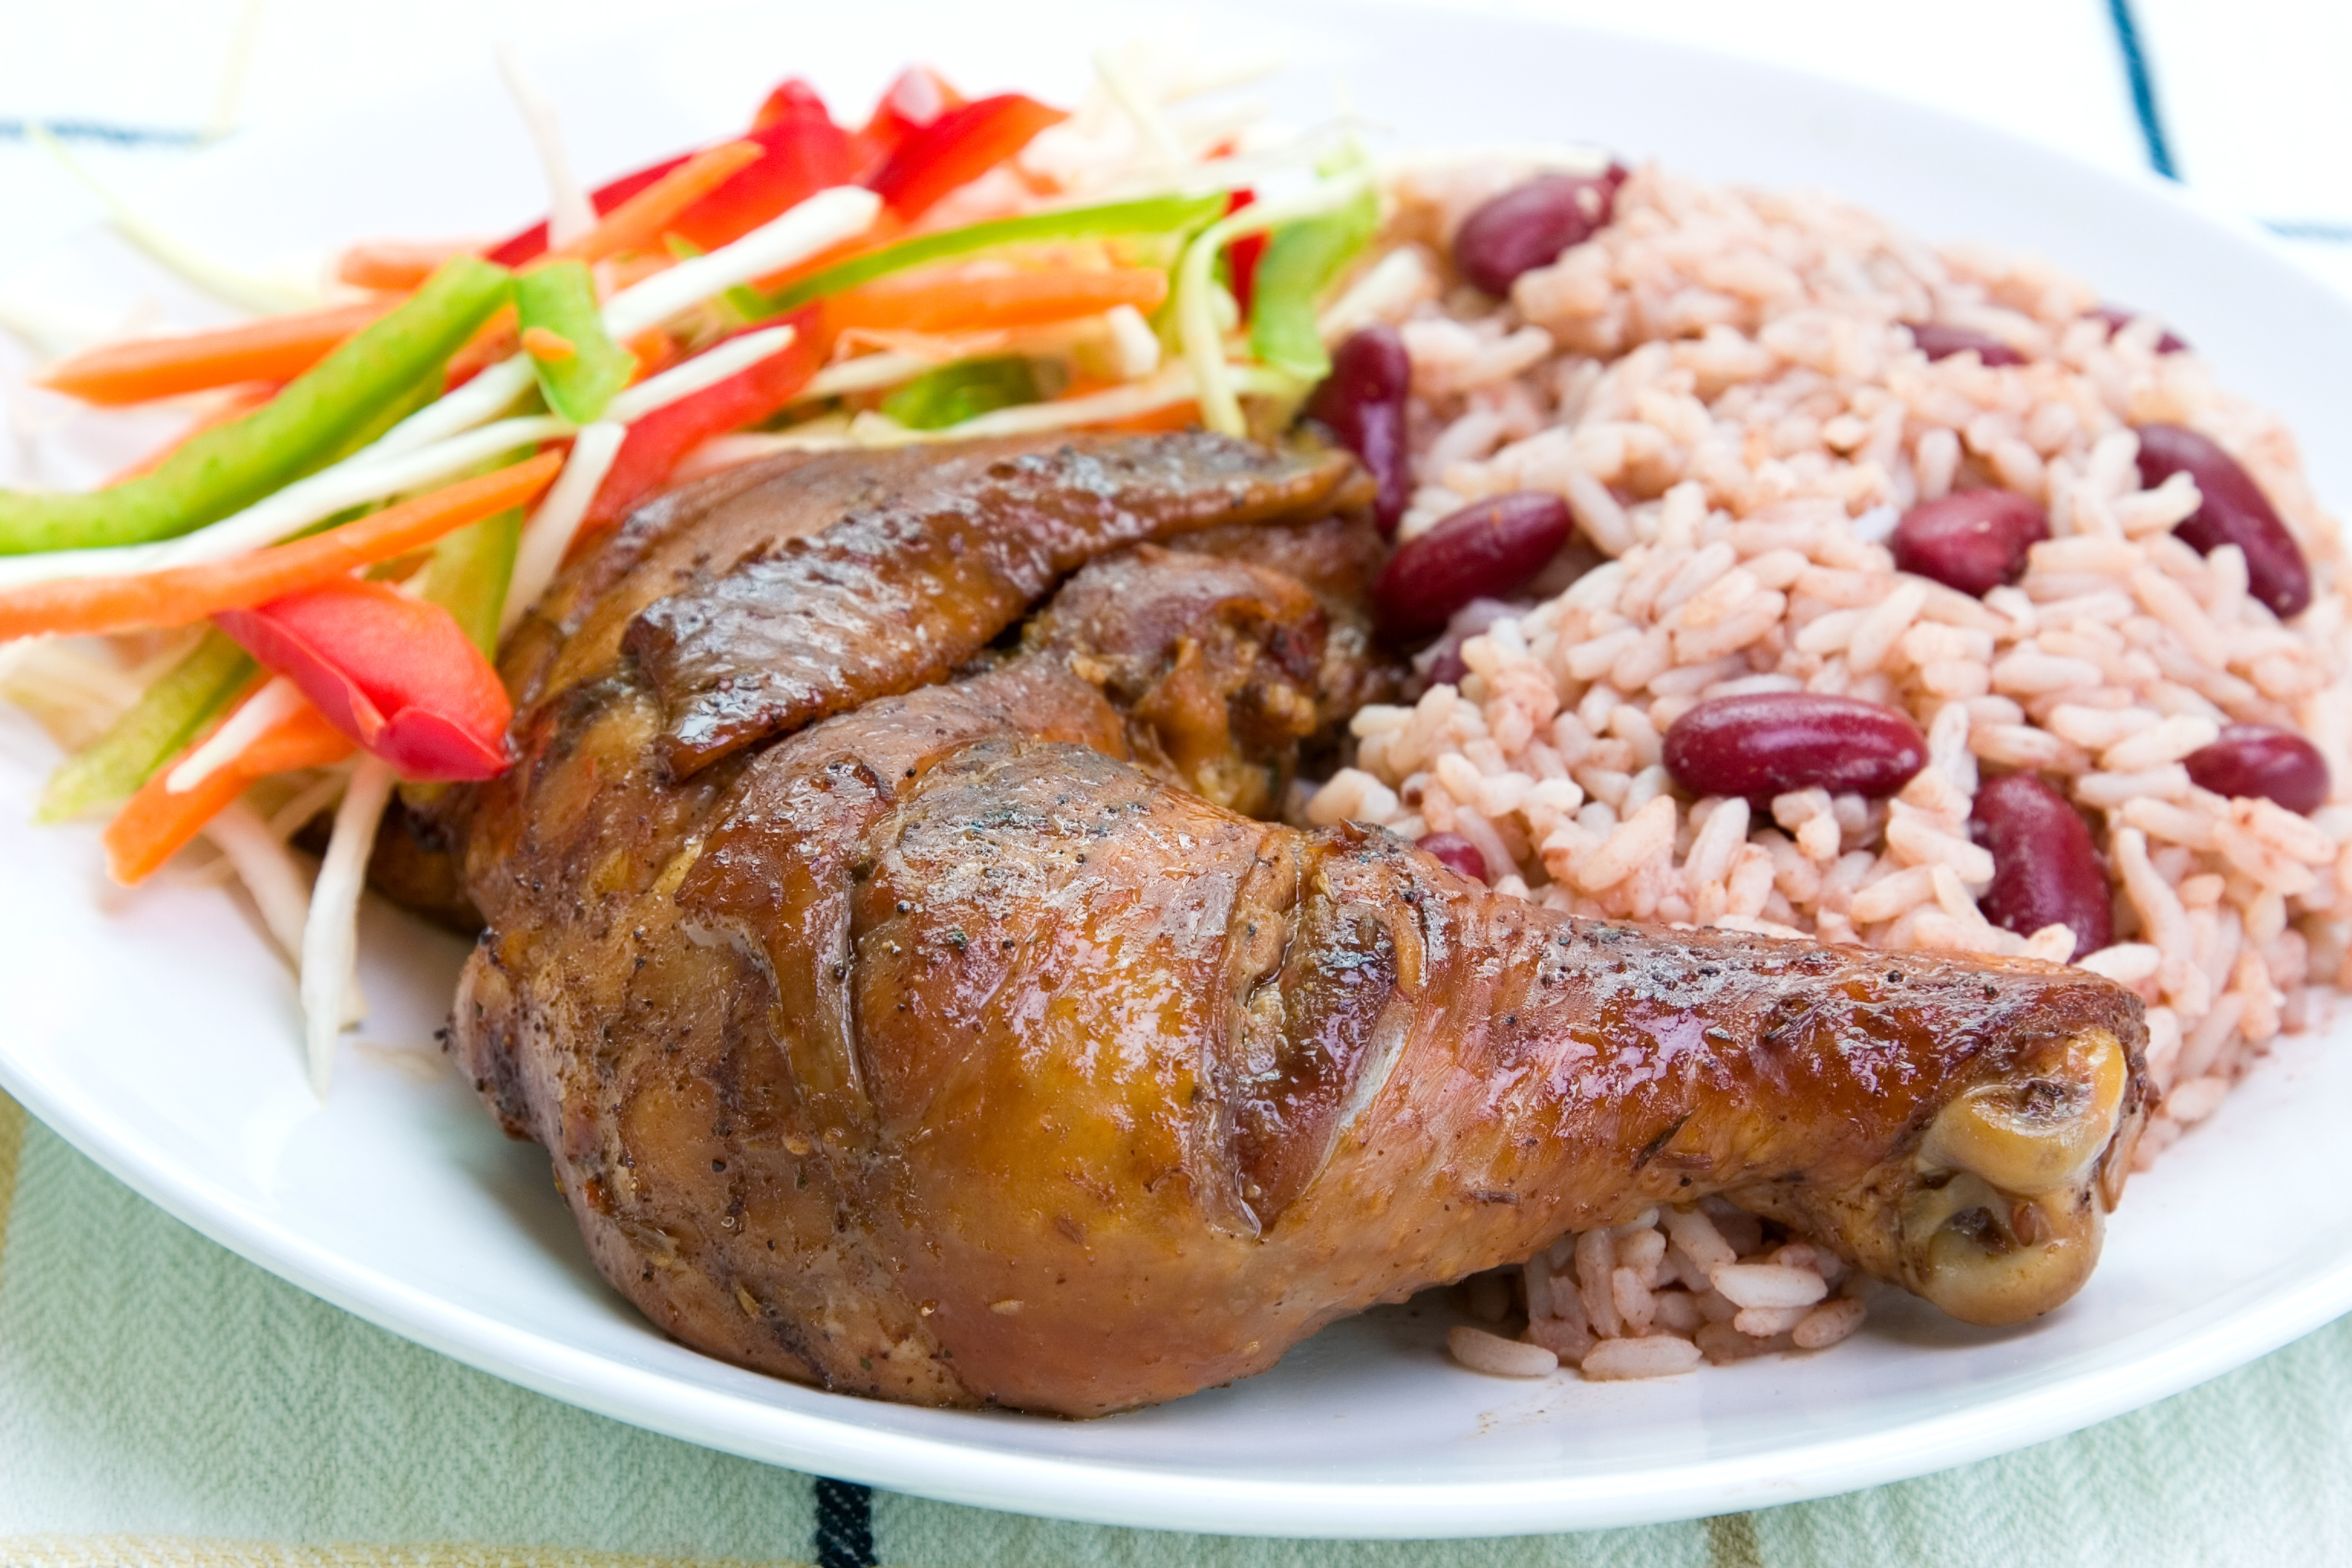 Cravin' Caribbean Food? The 5 Best Caribbean Restaurants in Mississauga